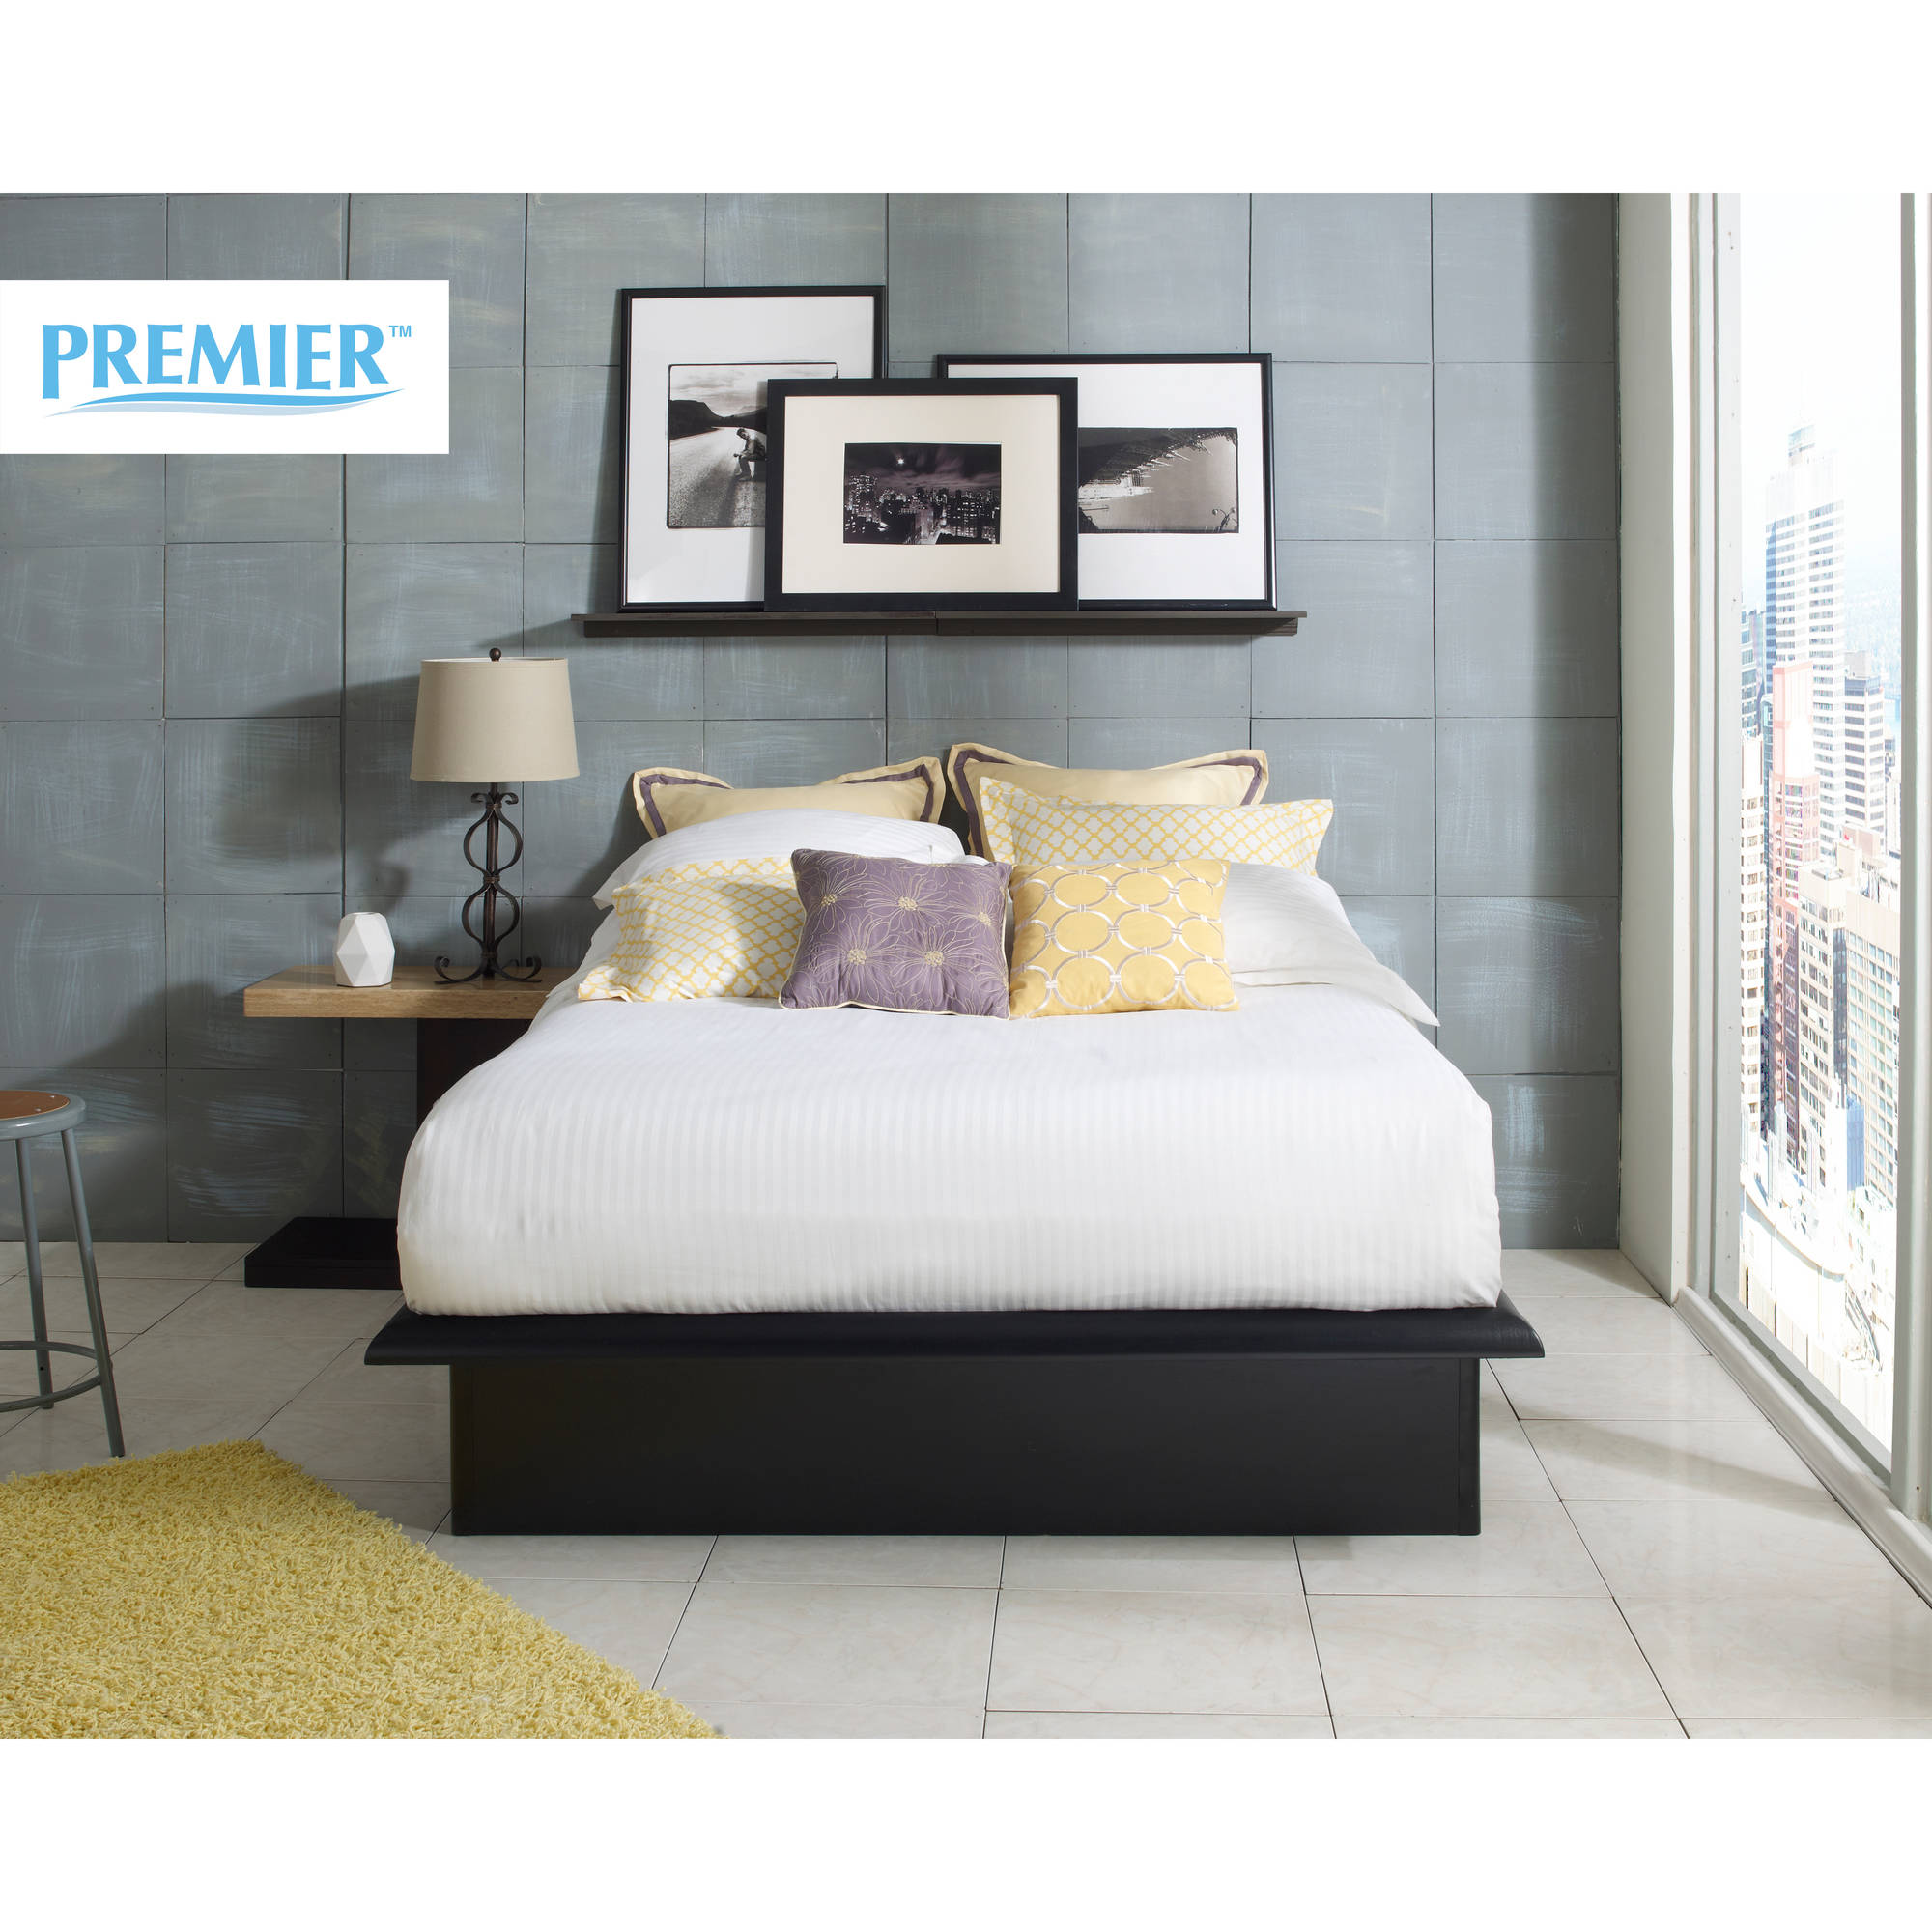 Premier Austin Metal Platform Base Bed Frame, Multiple Sizes